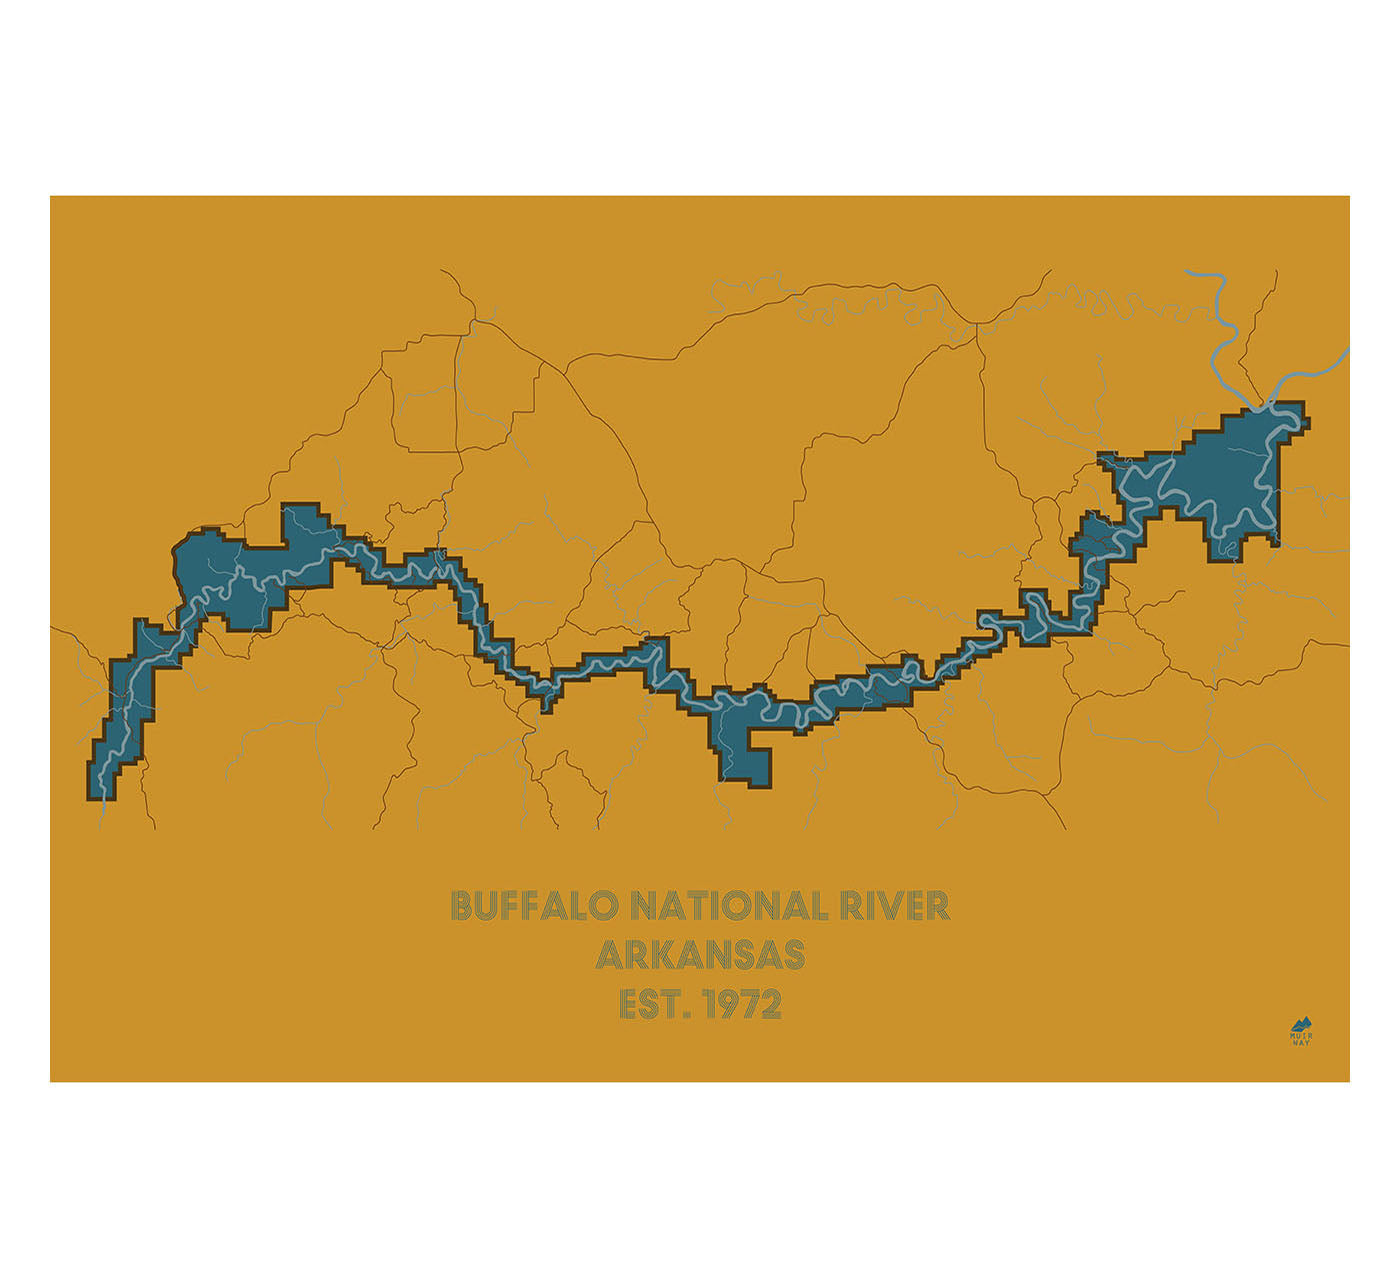 Buffalo National River Map on wind point map, the atlanta map, niagara falls map, st francis map, watertown map, rochester map, utica map, yellowstone river map, cincinnati map, toledo map, boston map, new york map, cooperstown ny on a map, fair grove map, indianapolis map, grand island map, college at brockport map, jacksonville map, blooming grove map, town of wheatfield map,